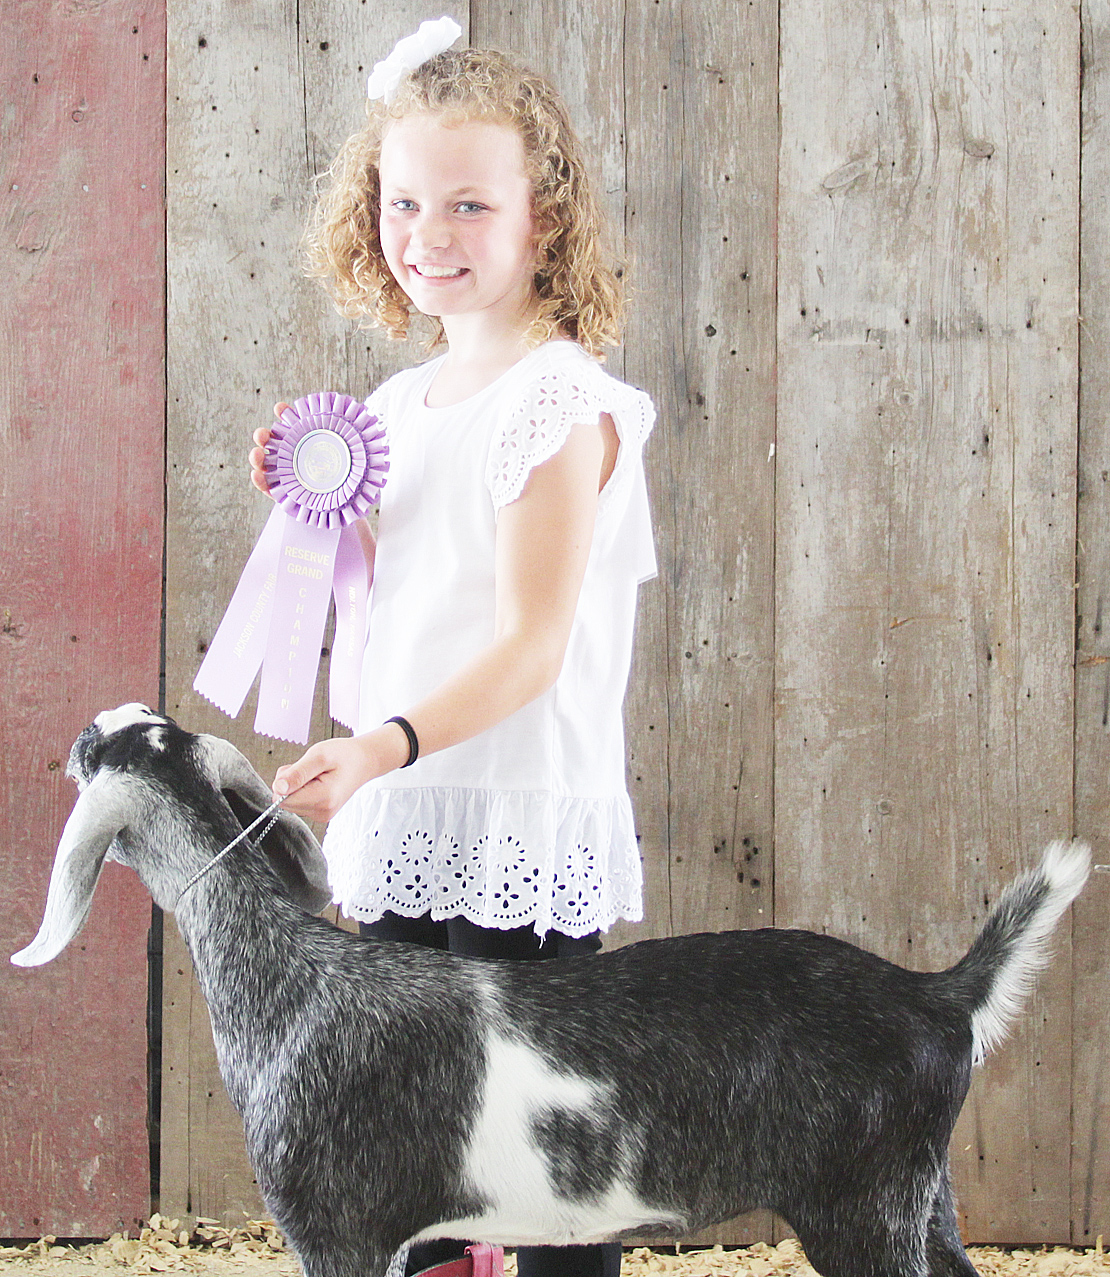 Kenna Simpson-Worley of the Ontario Busy Bees 4-H Club was named reserve champion beginner dairy goat showman at the 2020 Jackson County Fair.